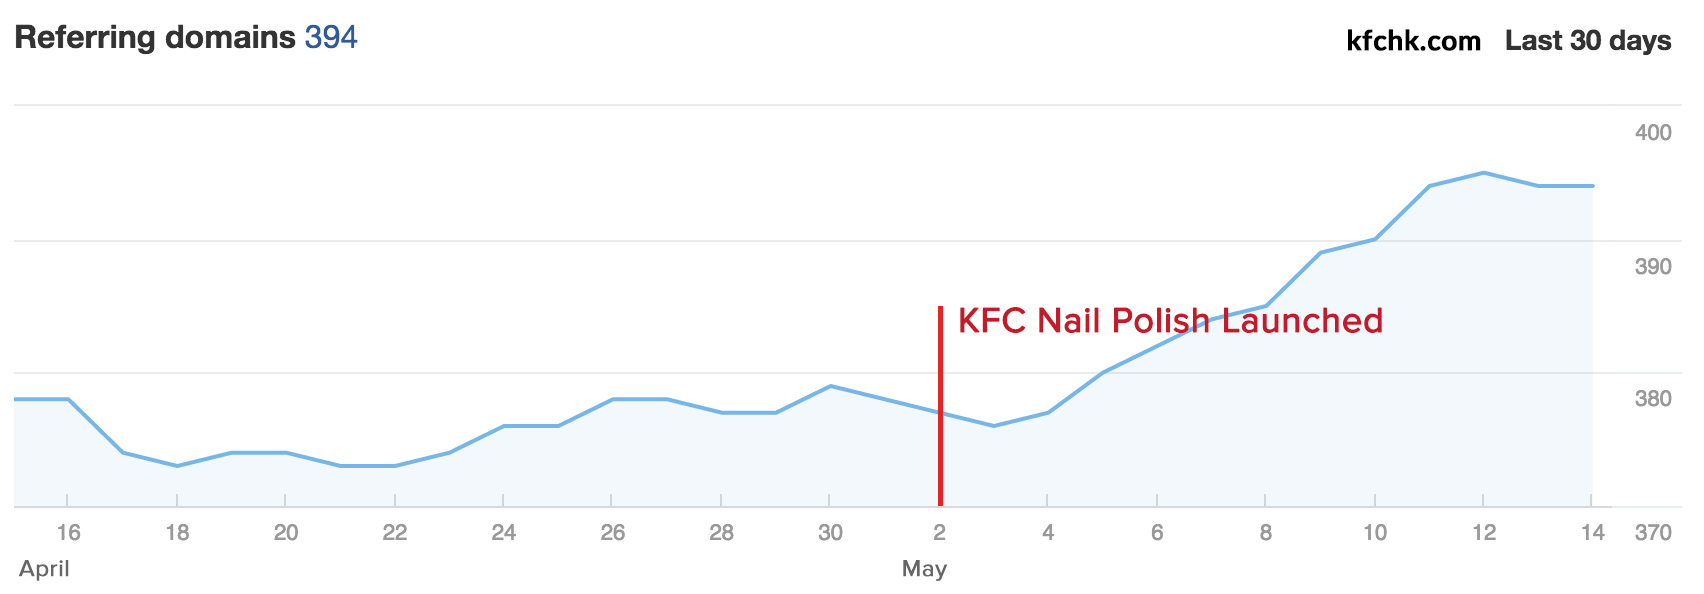 KFC only gained about 20 links from this